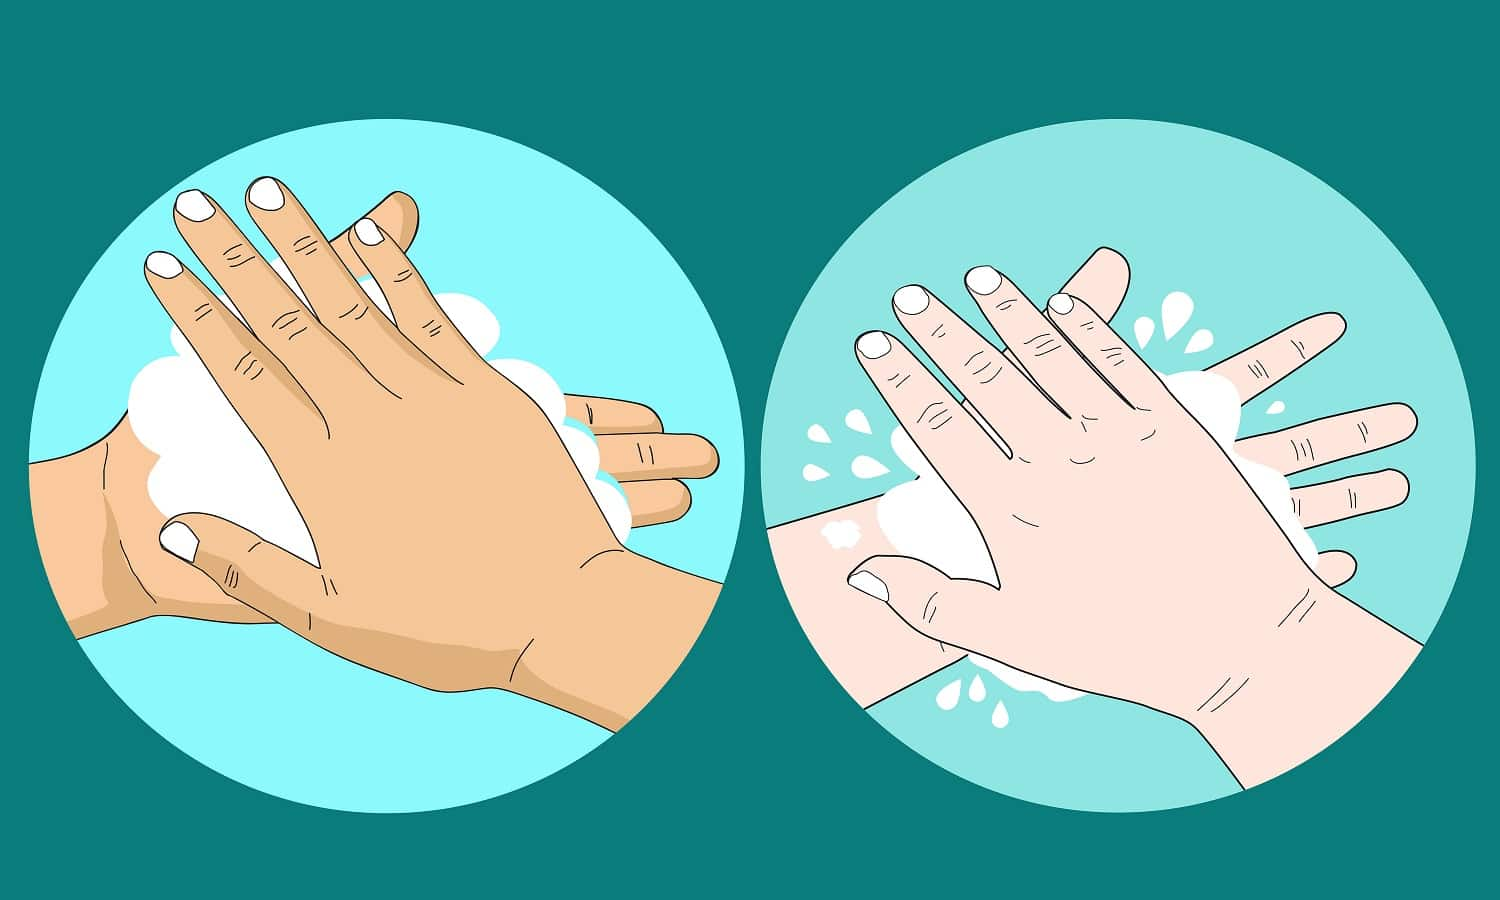 cartoon doodle drawing of people washing hand with soap and bubble, Body cleaning concept to prevent germs and illness.